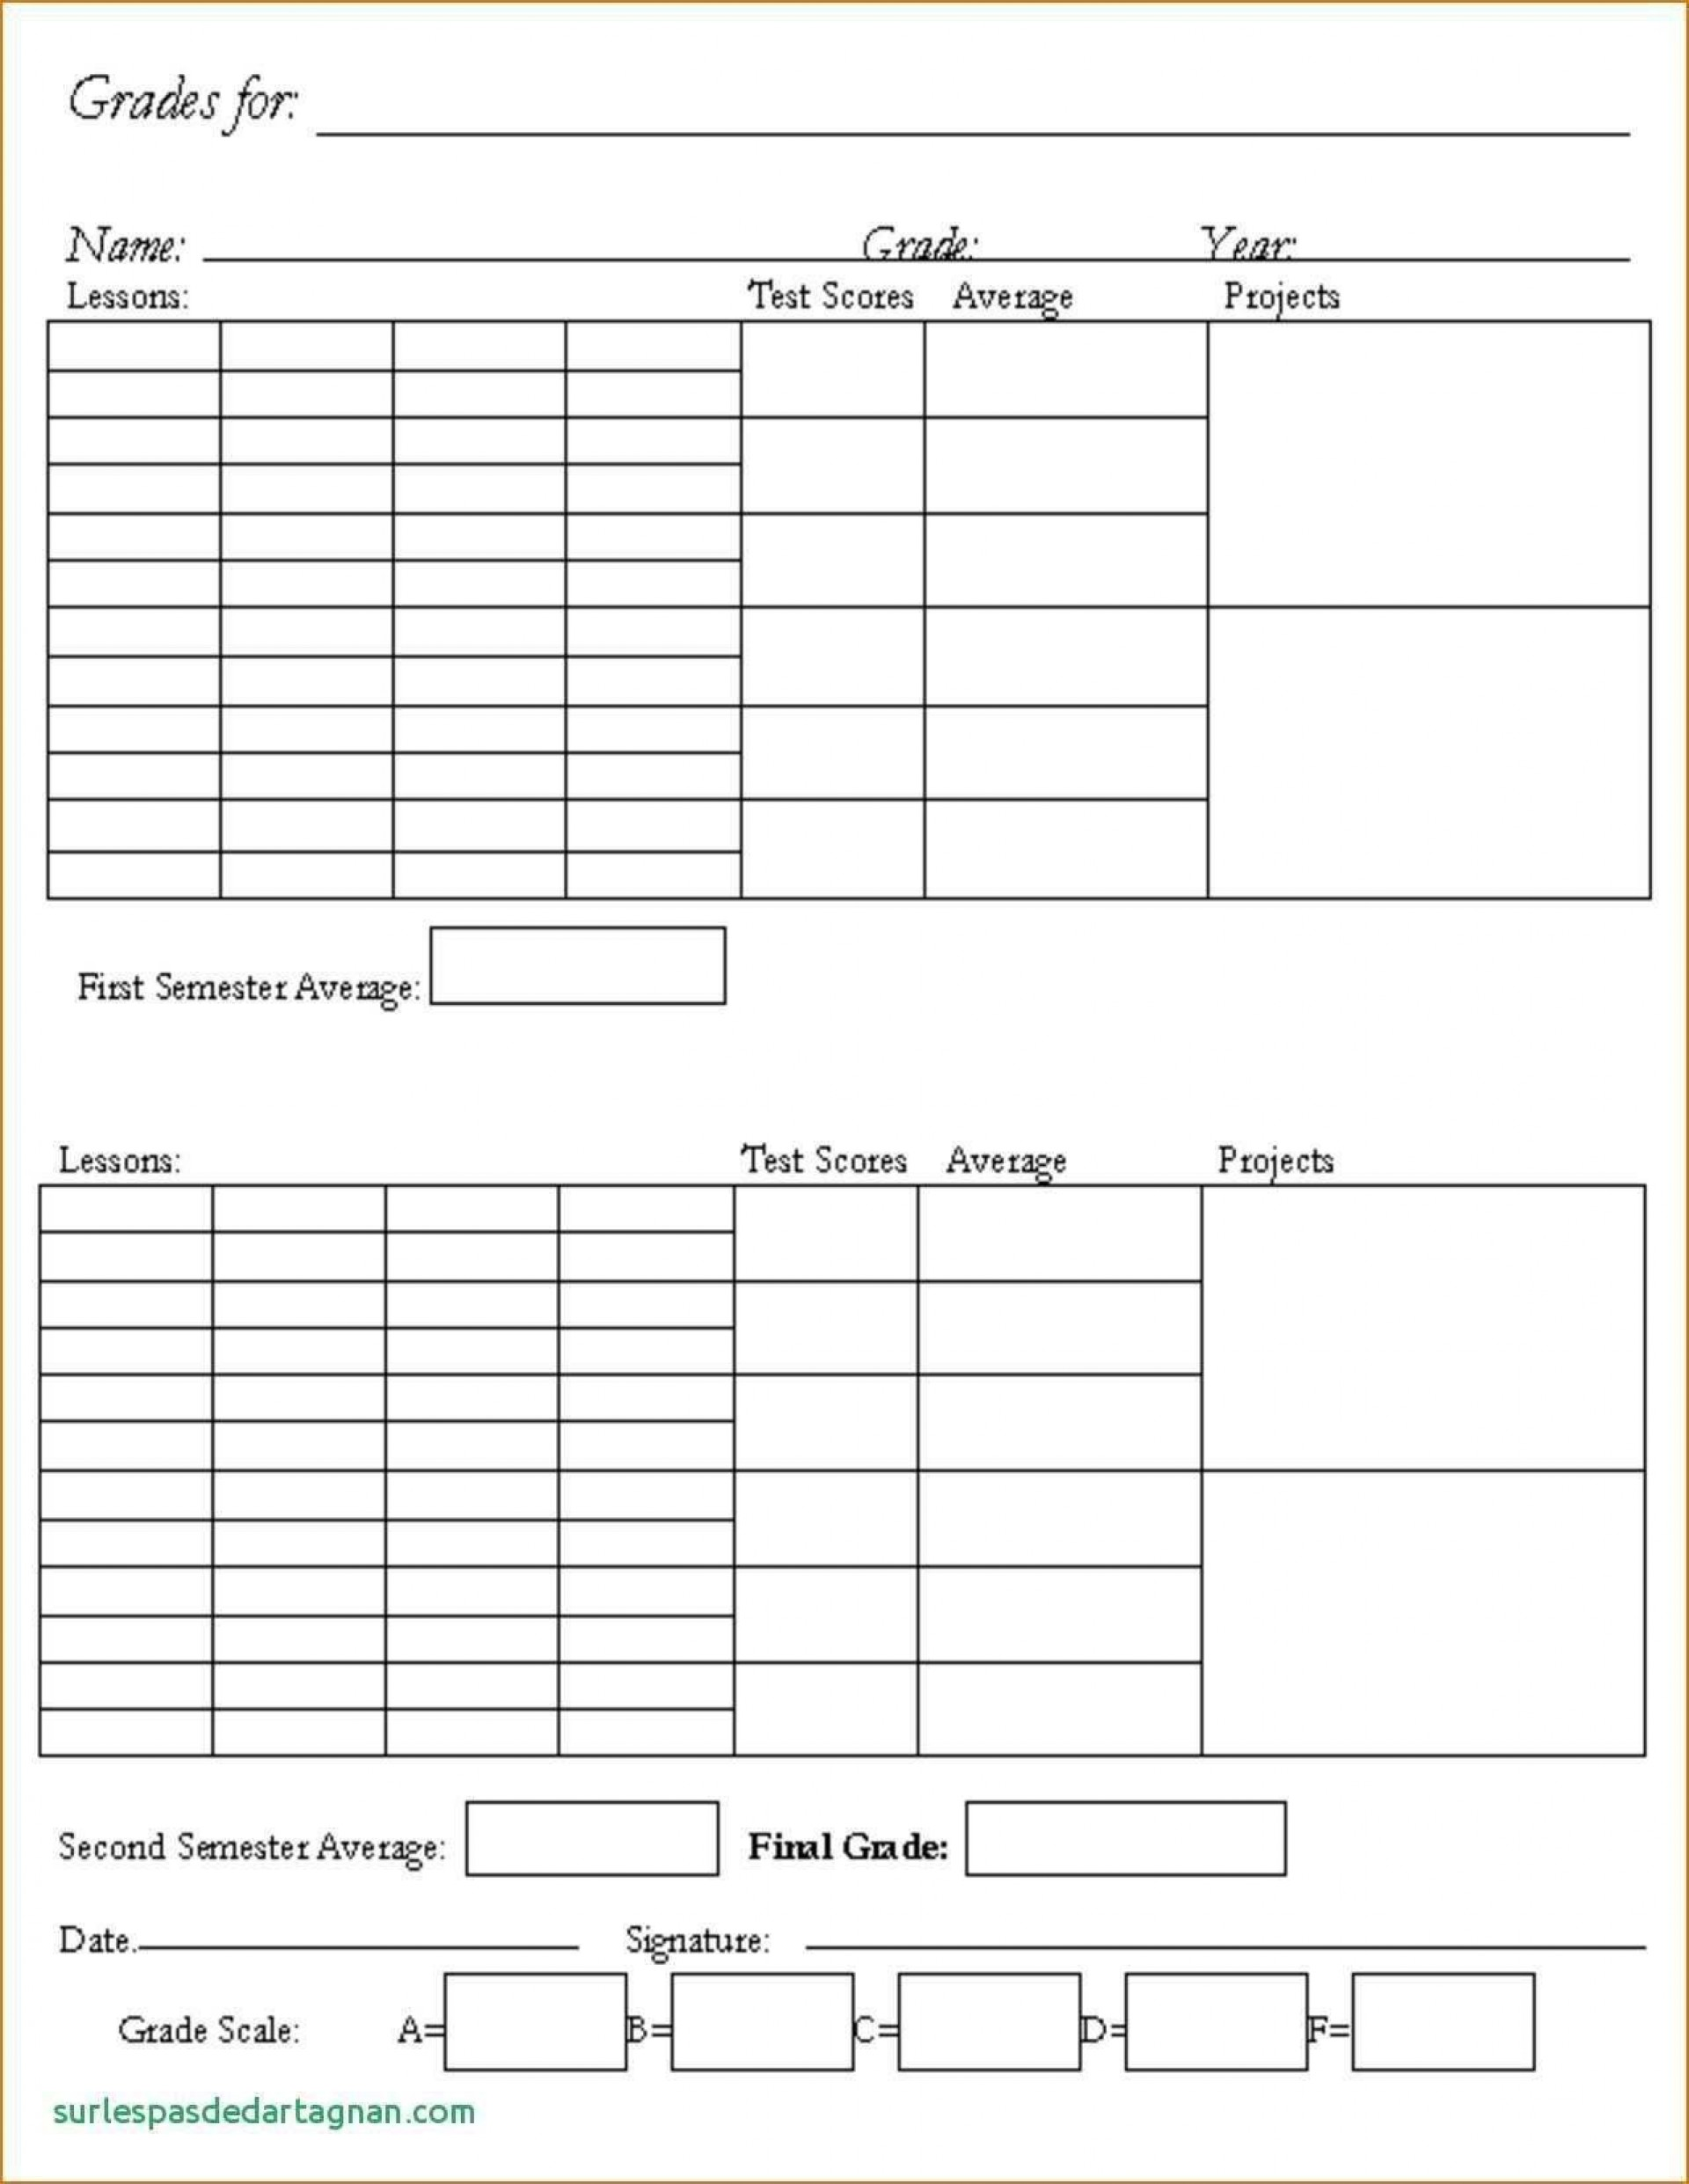 000 Dreaded Middle School Report Card Template High Definition  Pdf Homeschool Free Standard Based Sample1920